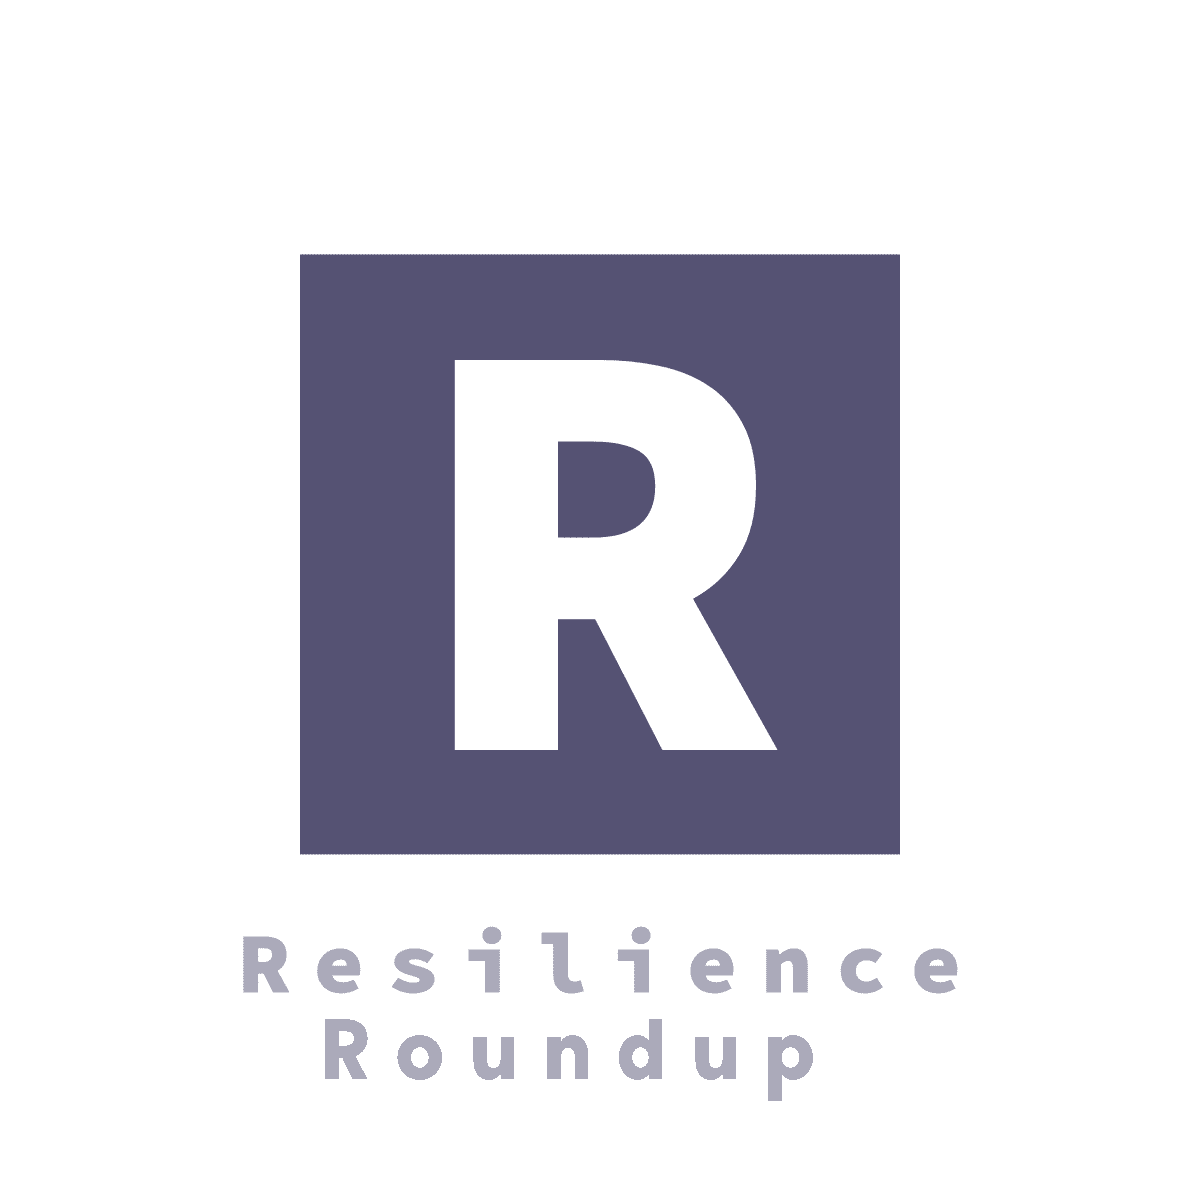 Resilience Roundup